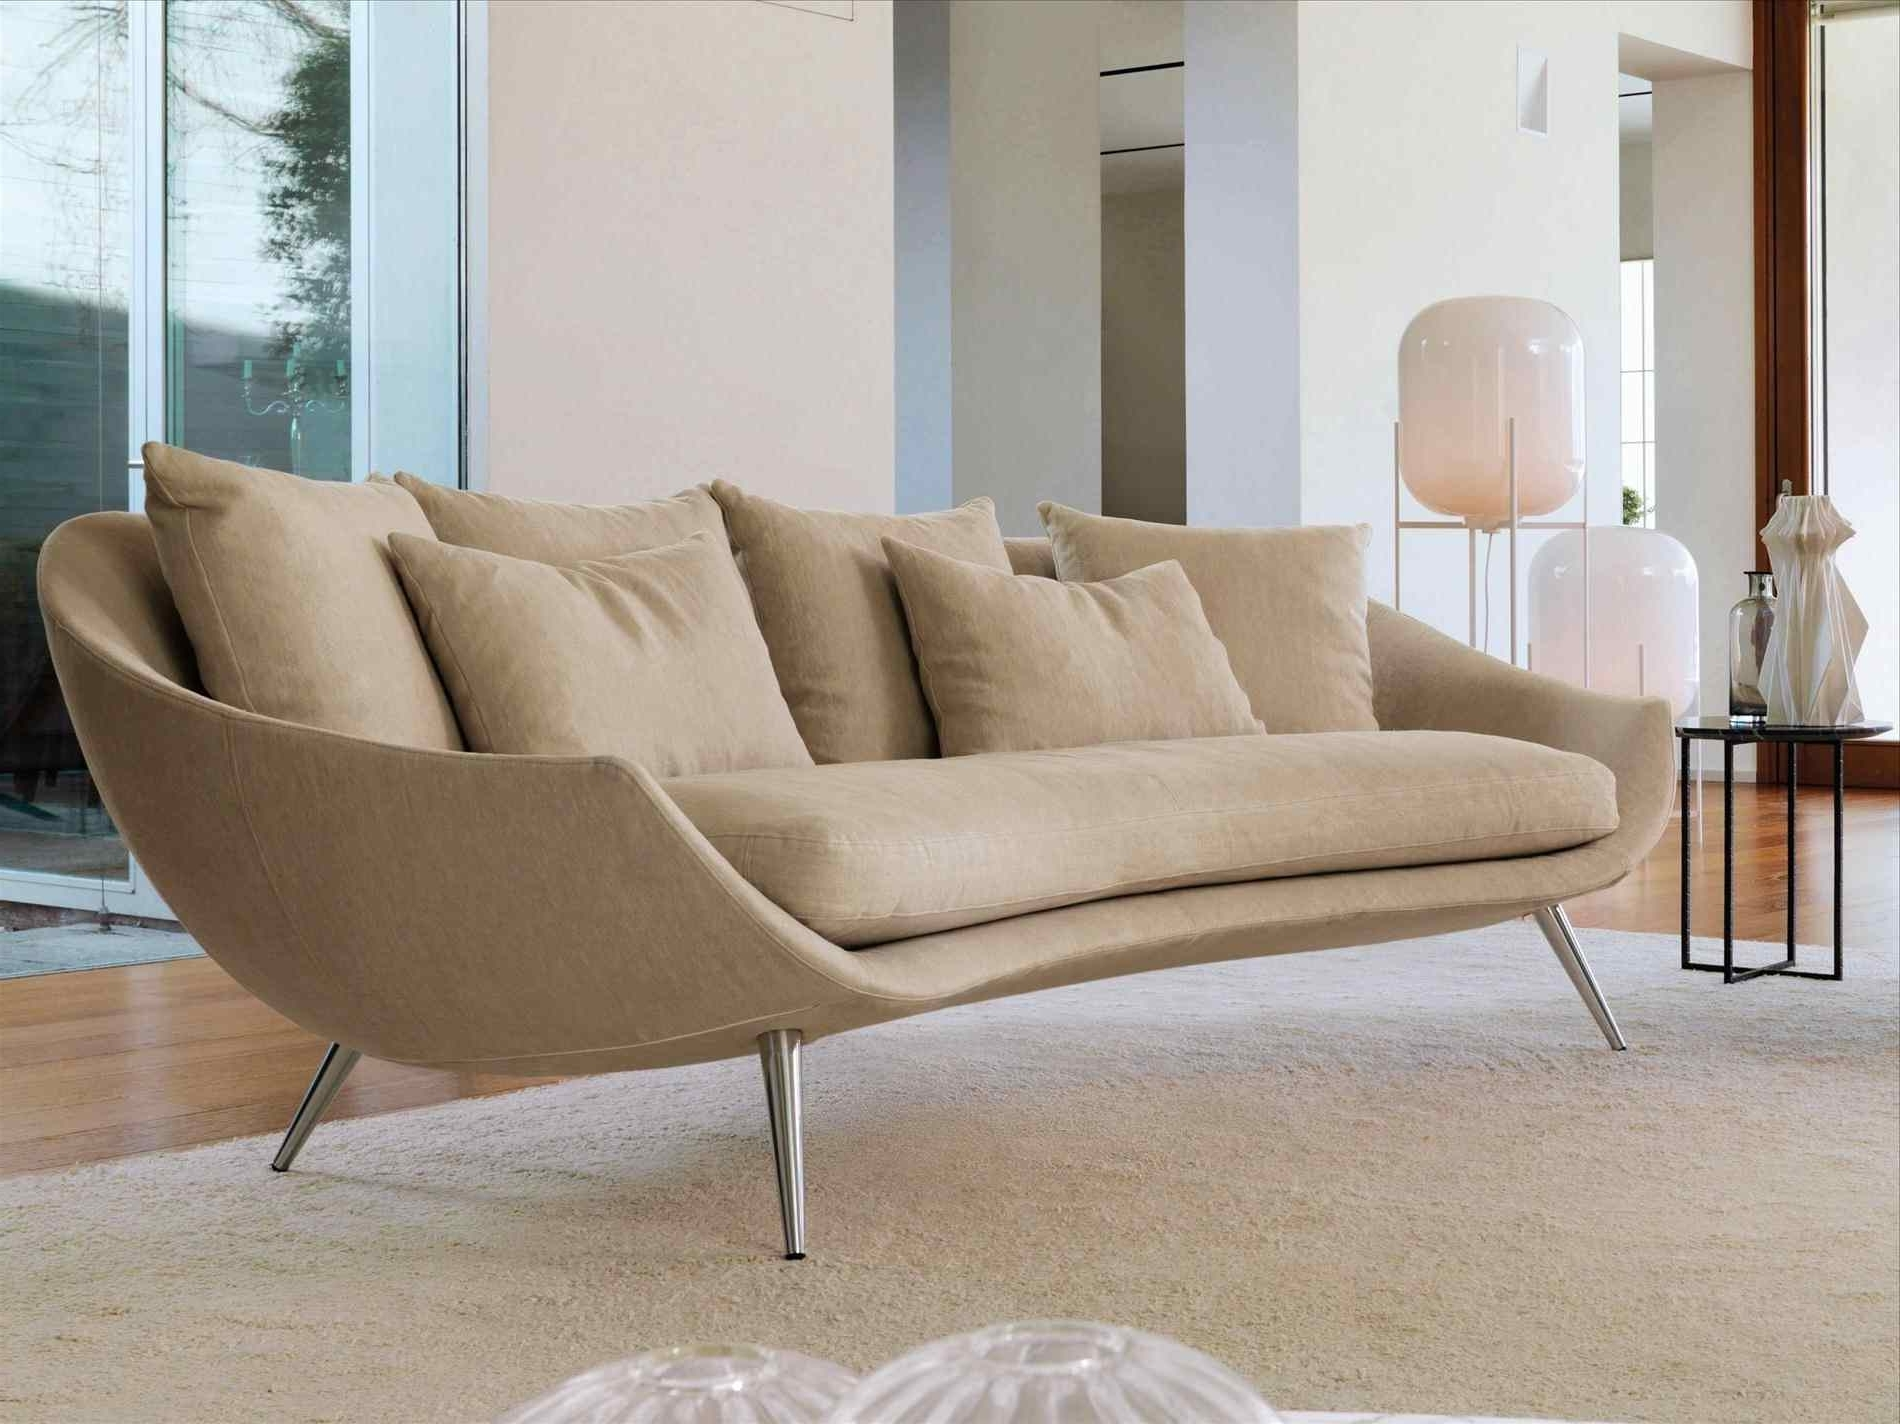 Famous Sofa : Fabric Seater Cover Sectional Sectional Sofas With Inside Removable Covers Sectional Sofas (View 4 of 20)